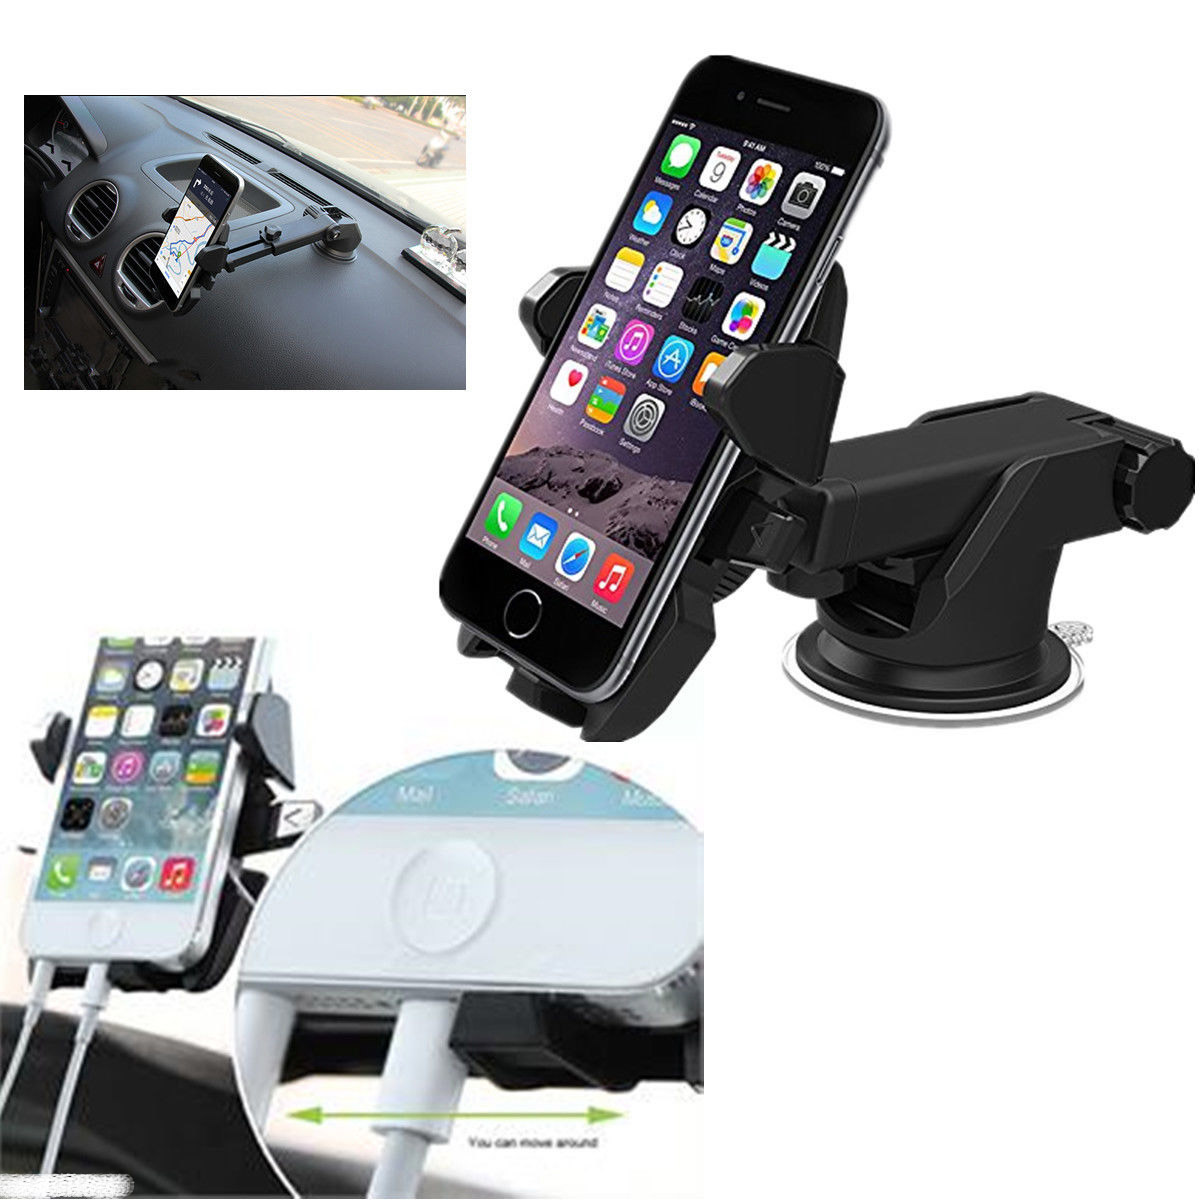 Android Phone Holder : universal car 360 windshield mount holder stand for iphone android phone gps ~ Russianpoet.info Haus und Dekorationen